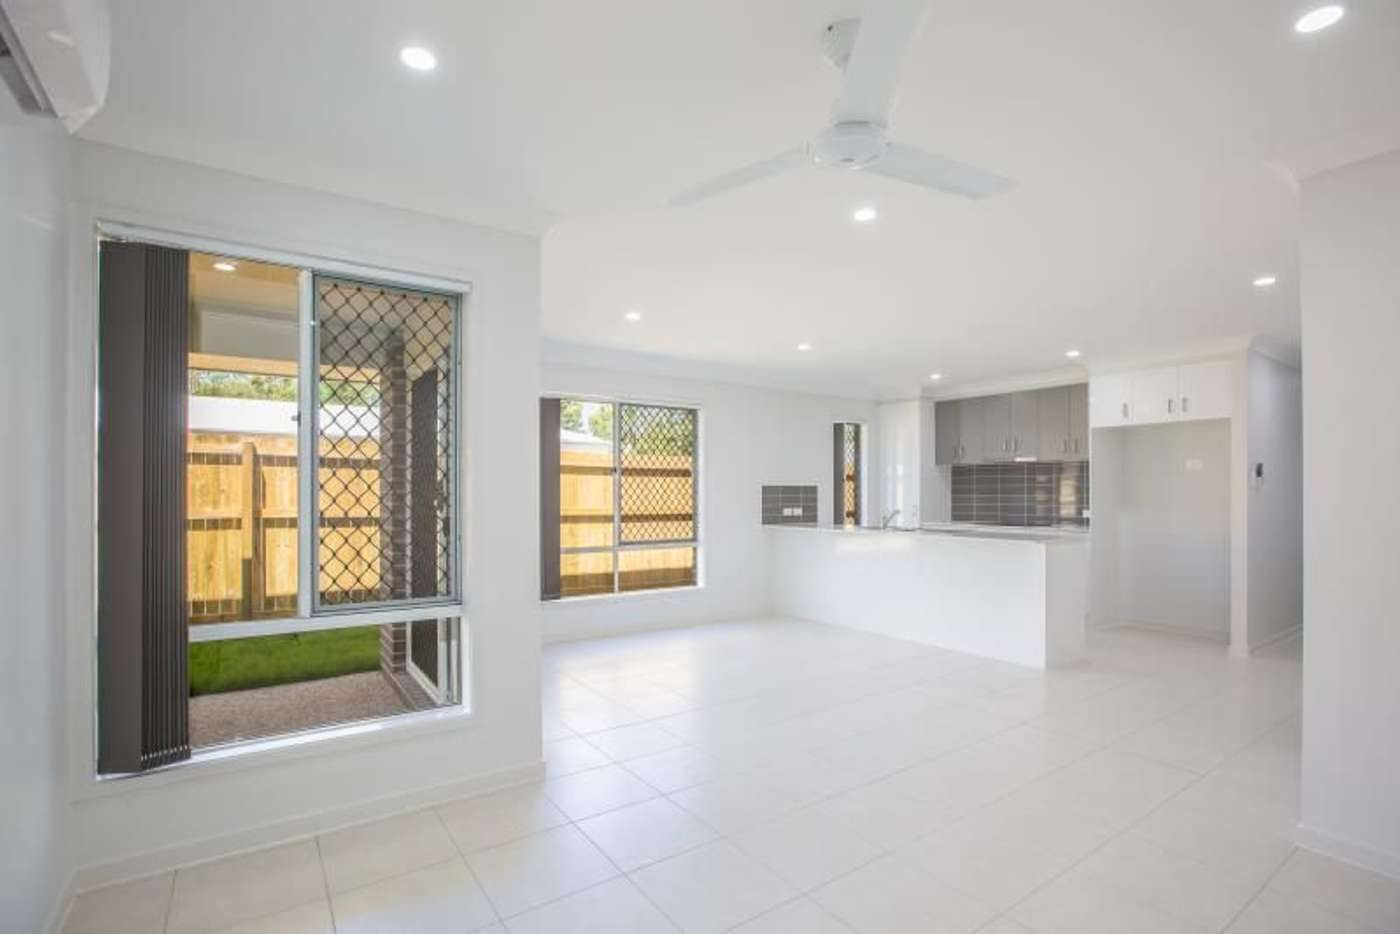 Fifth view of Homely house listing, 53 Willow Circuit, Yarrabilba QLD 4207